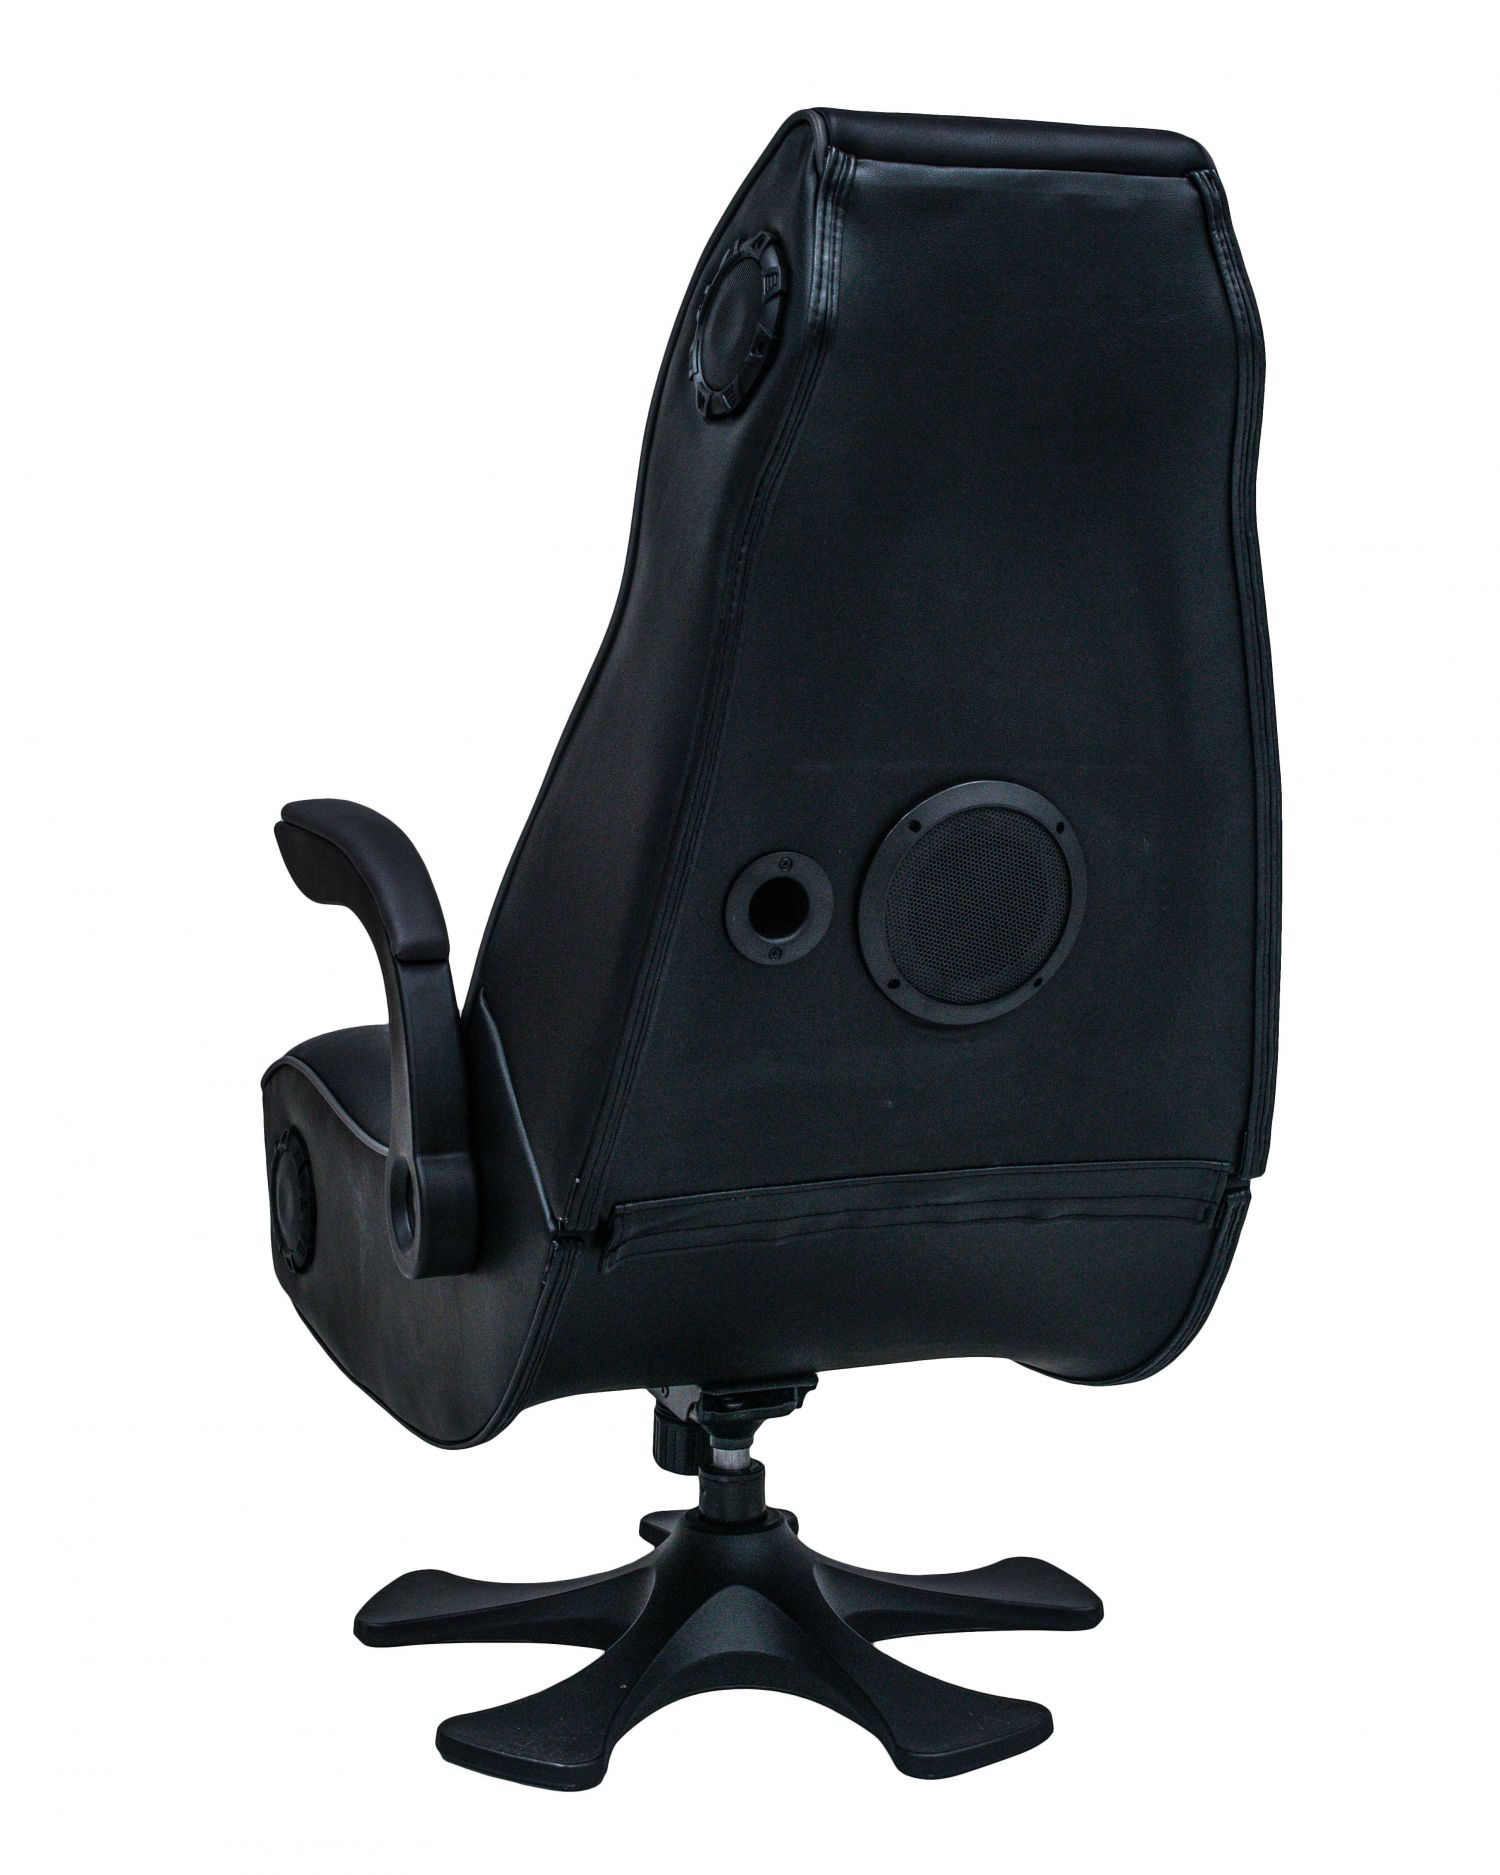 Remarkable Xrocker Sony Infiniti 4 1 Nordic Game Supply Pdpeps Interior Chair Design Pdpepsorg